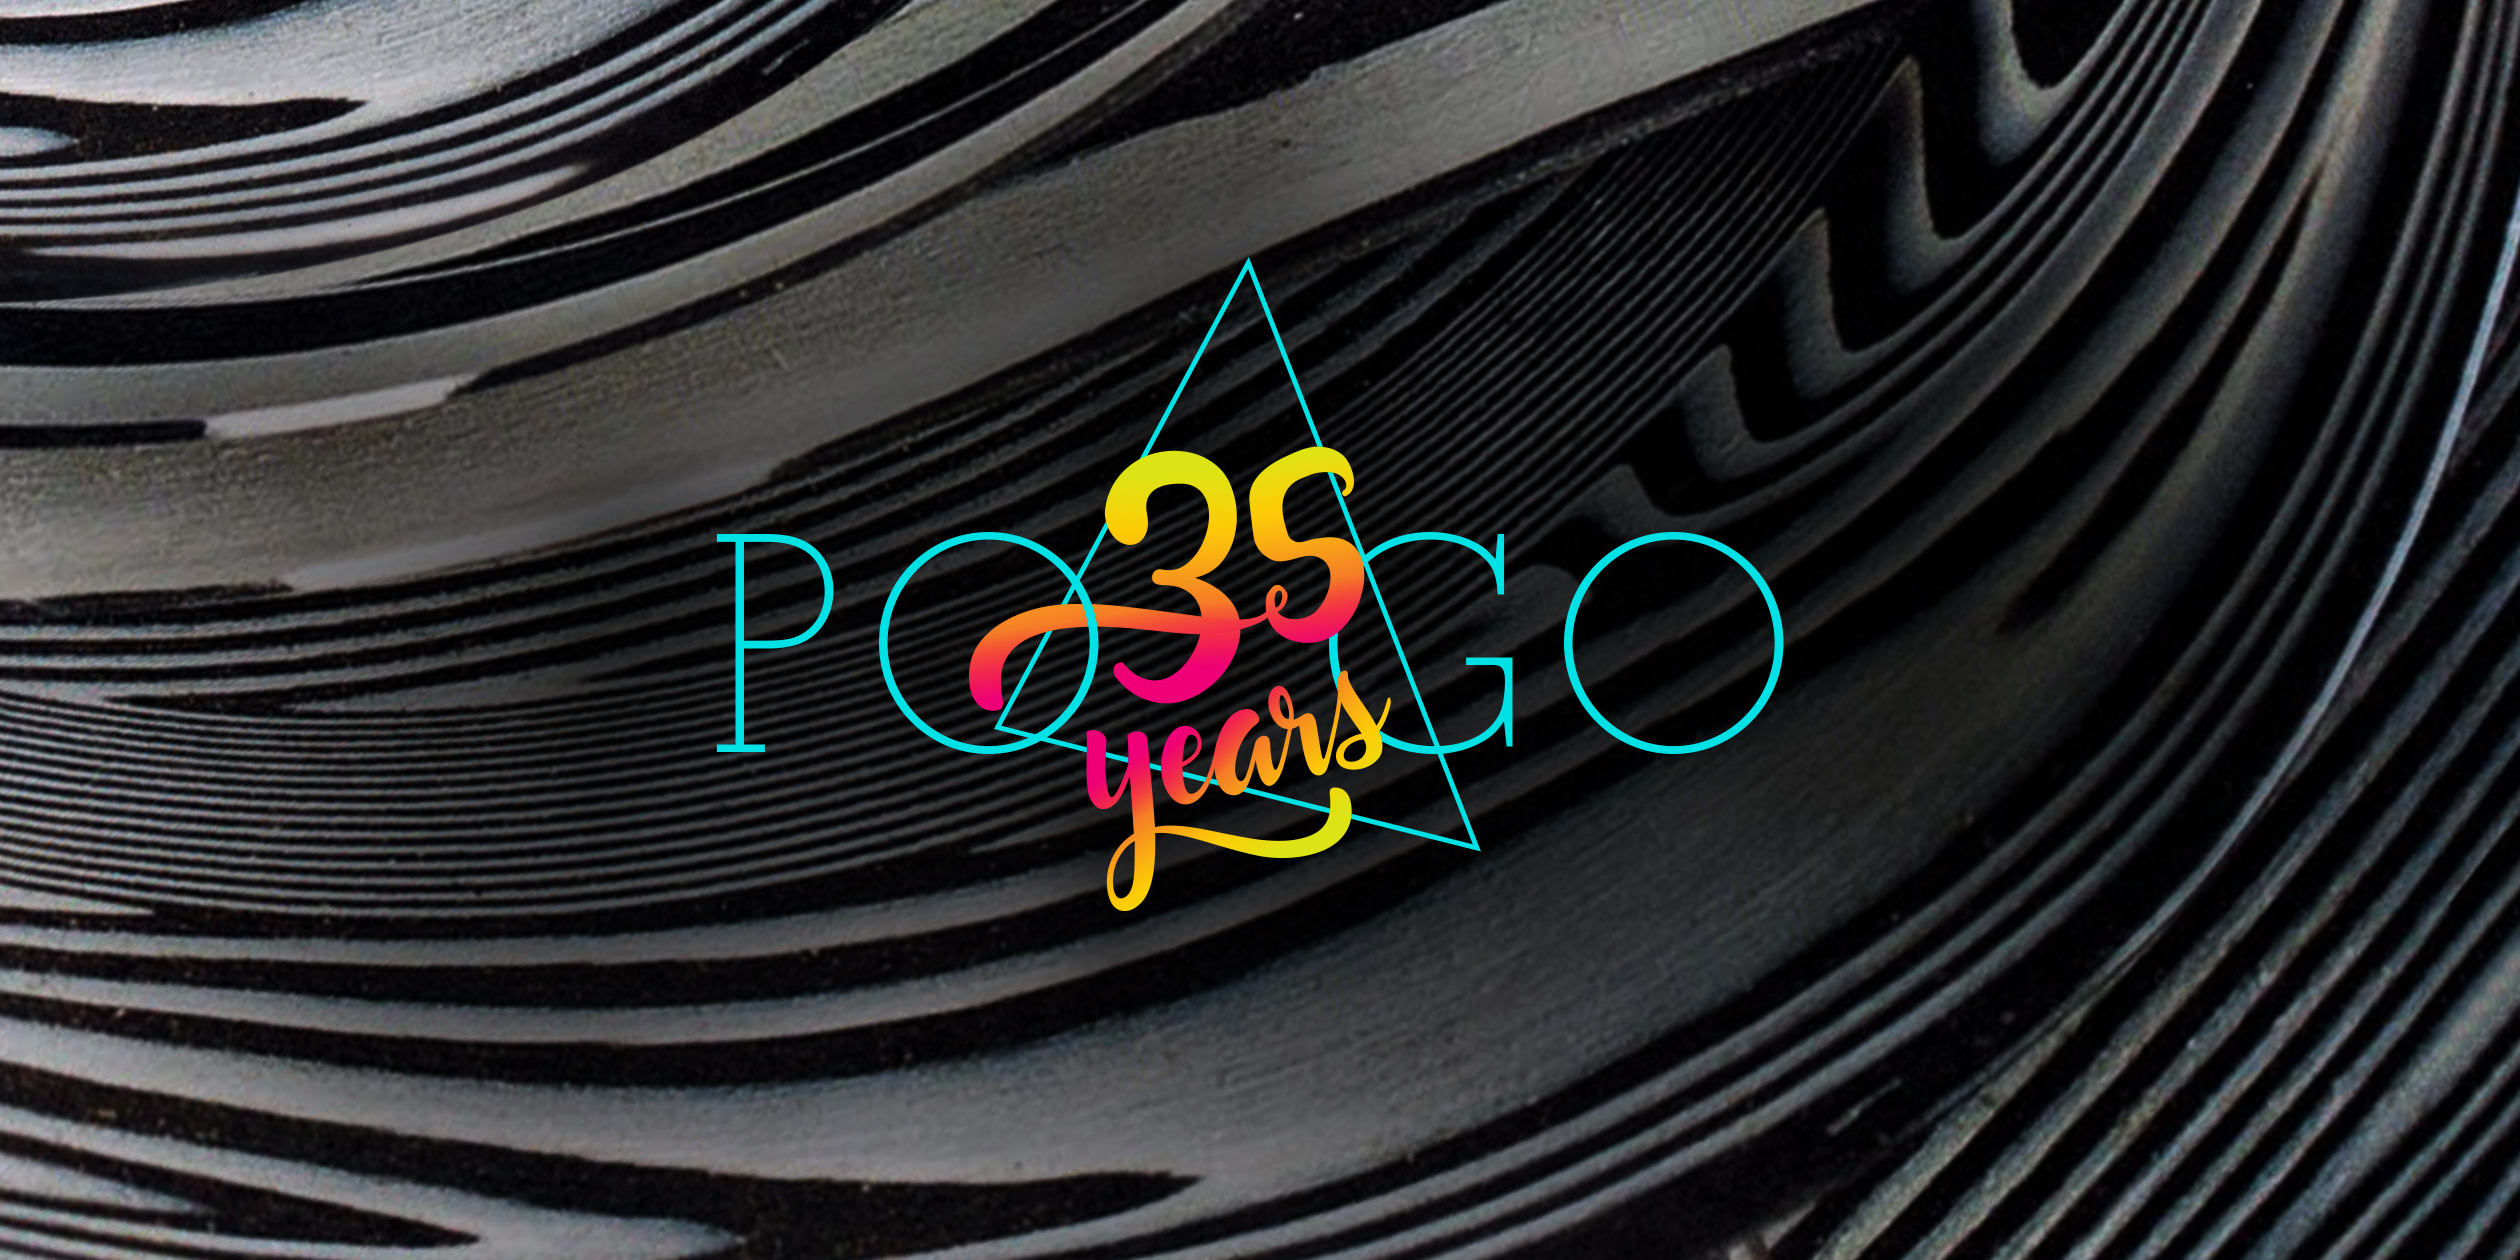 Pogo 35 years logo graphic imposed on psychedelic back and white background